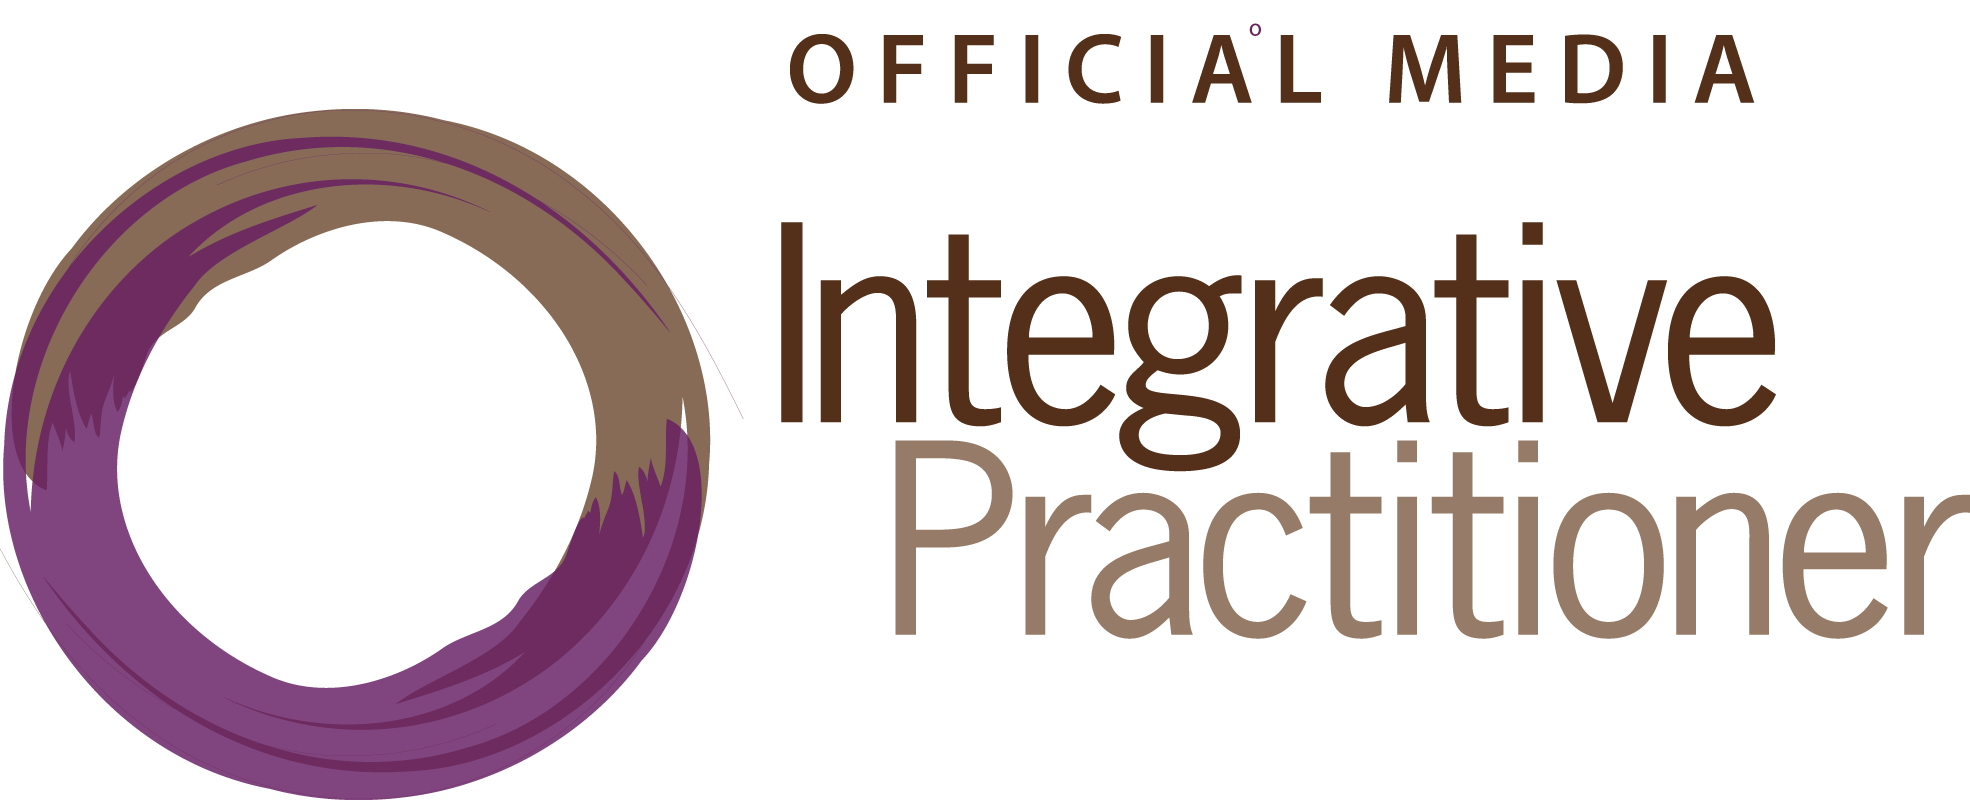 Official Media Integrative Practitioner